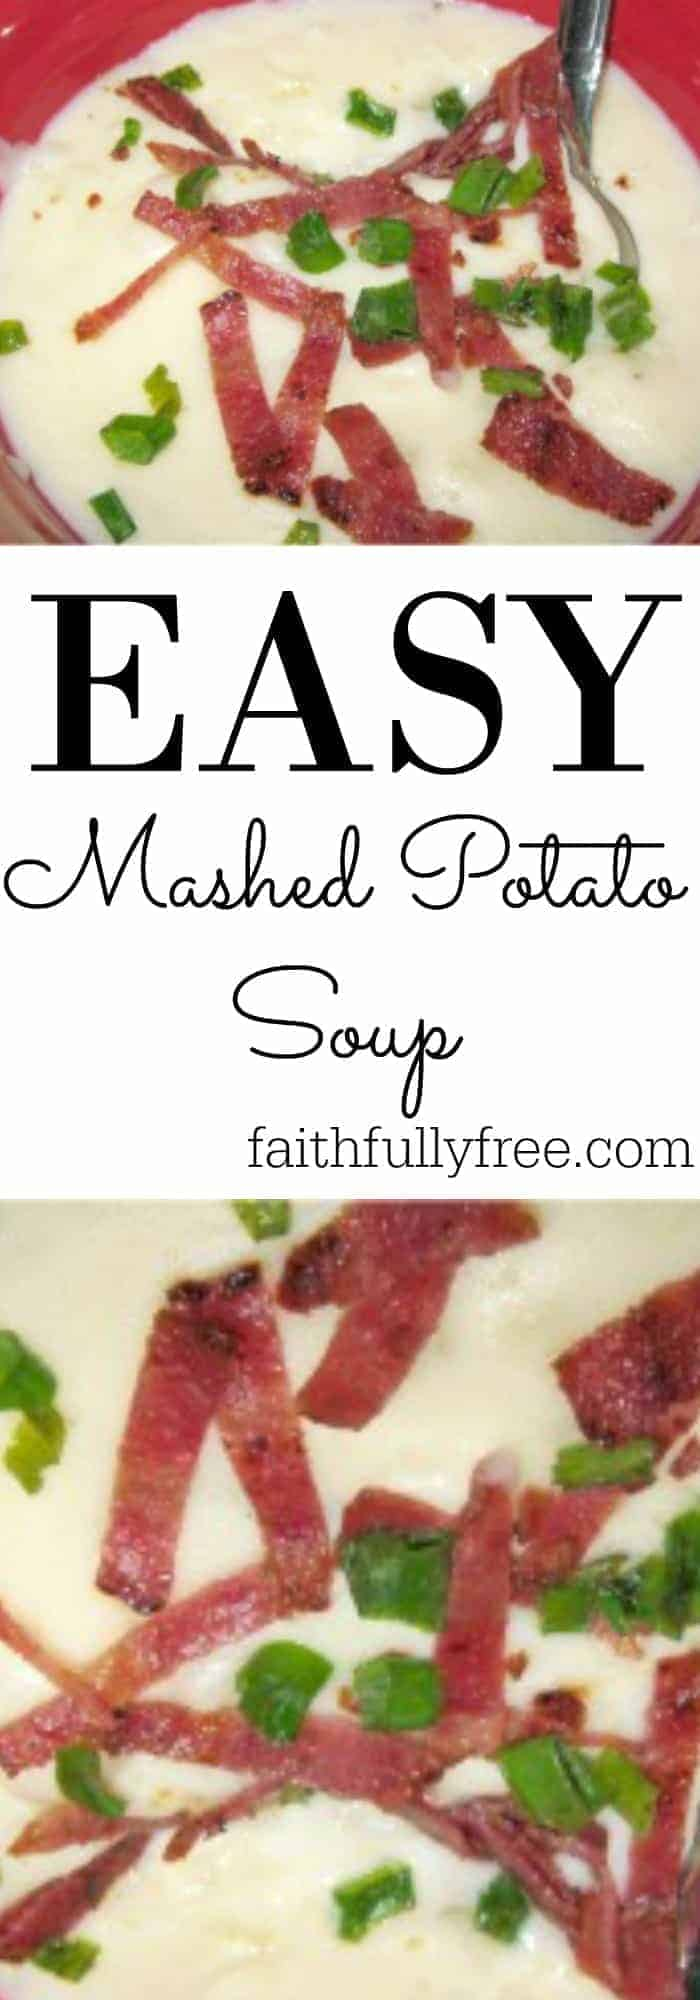 Easy Mashed Potato Soup